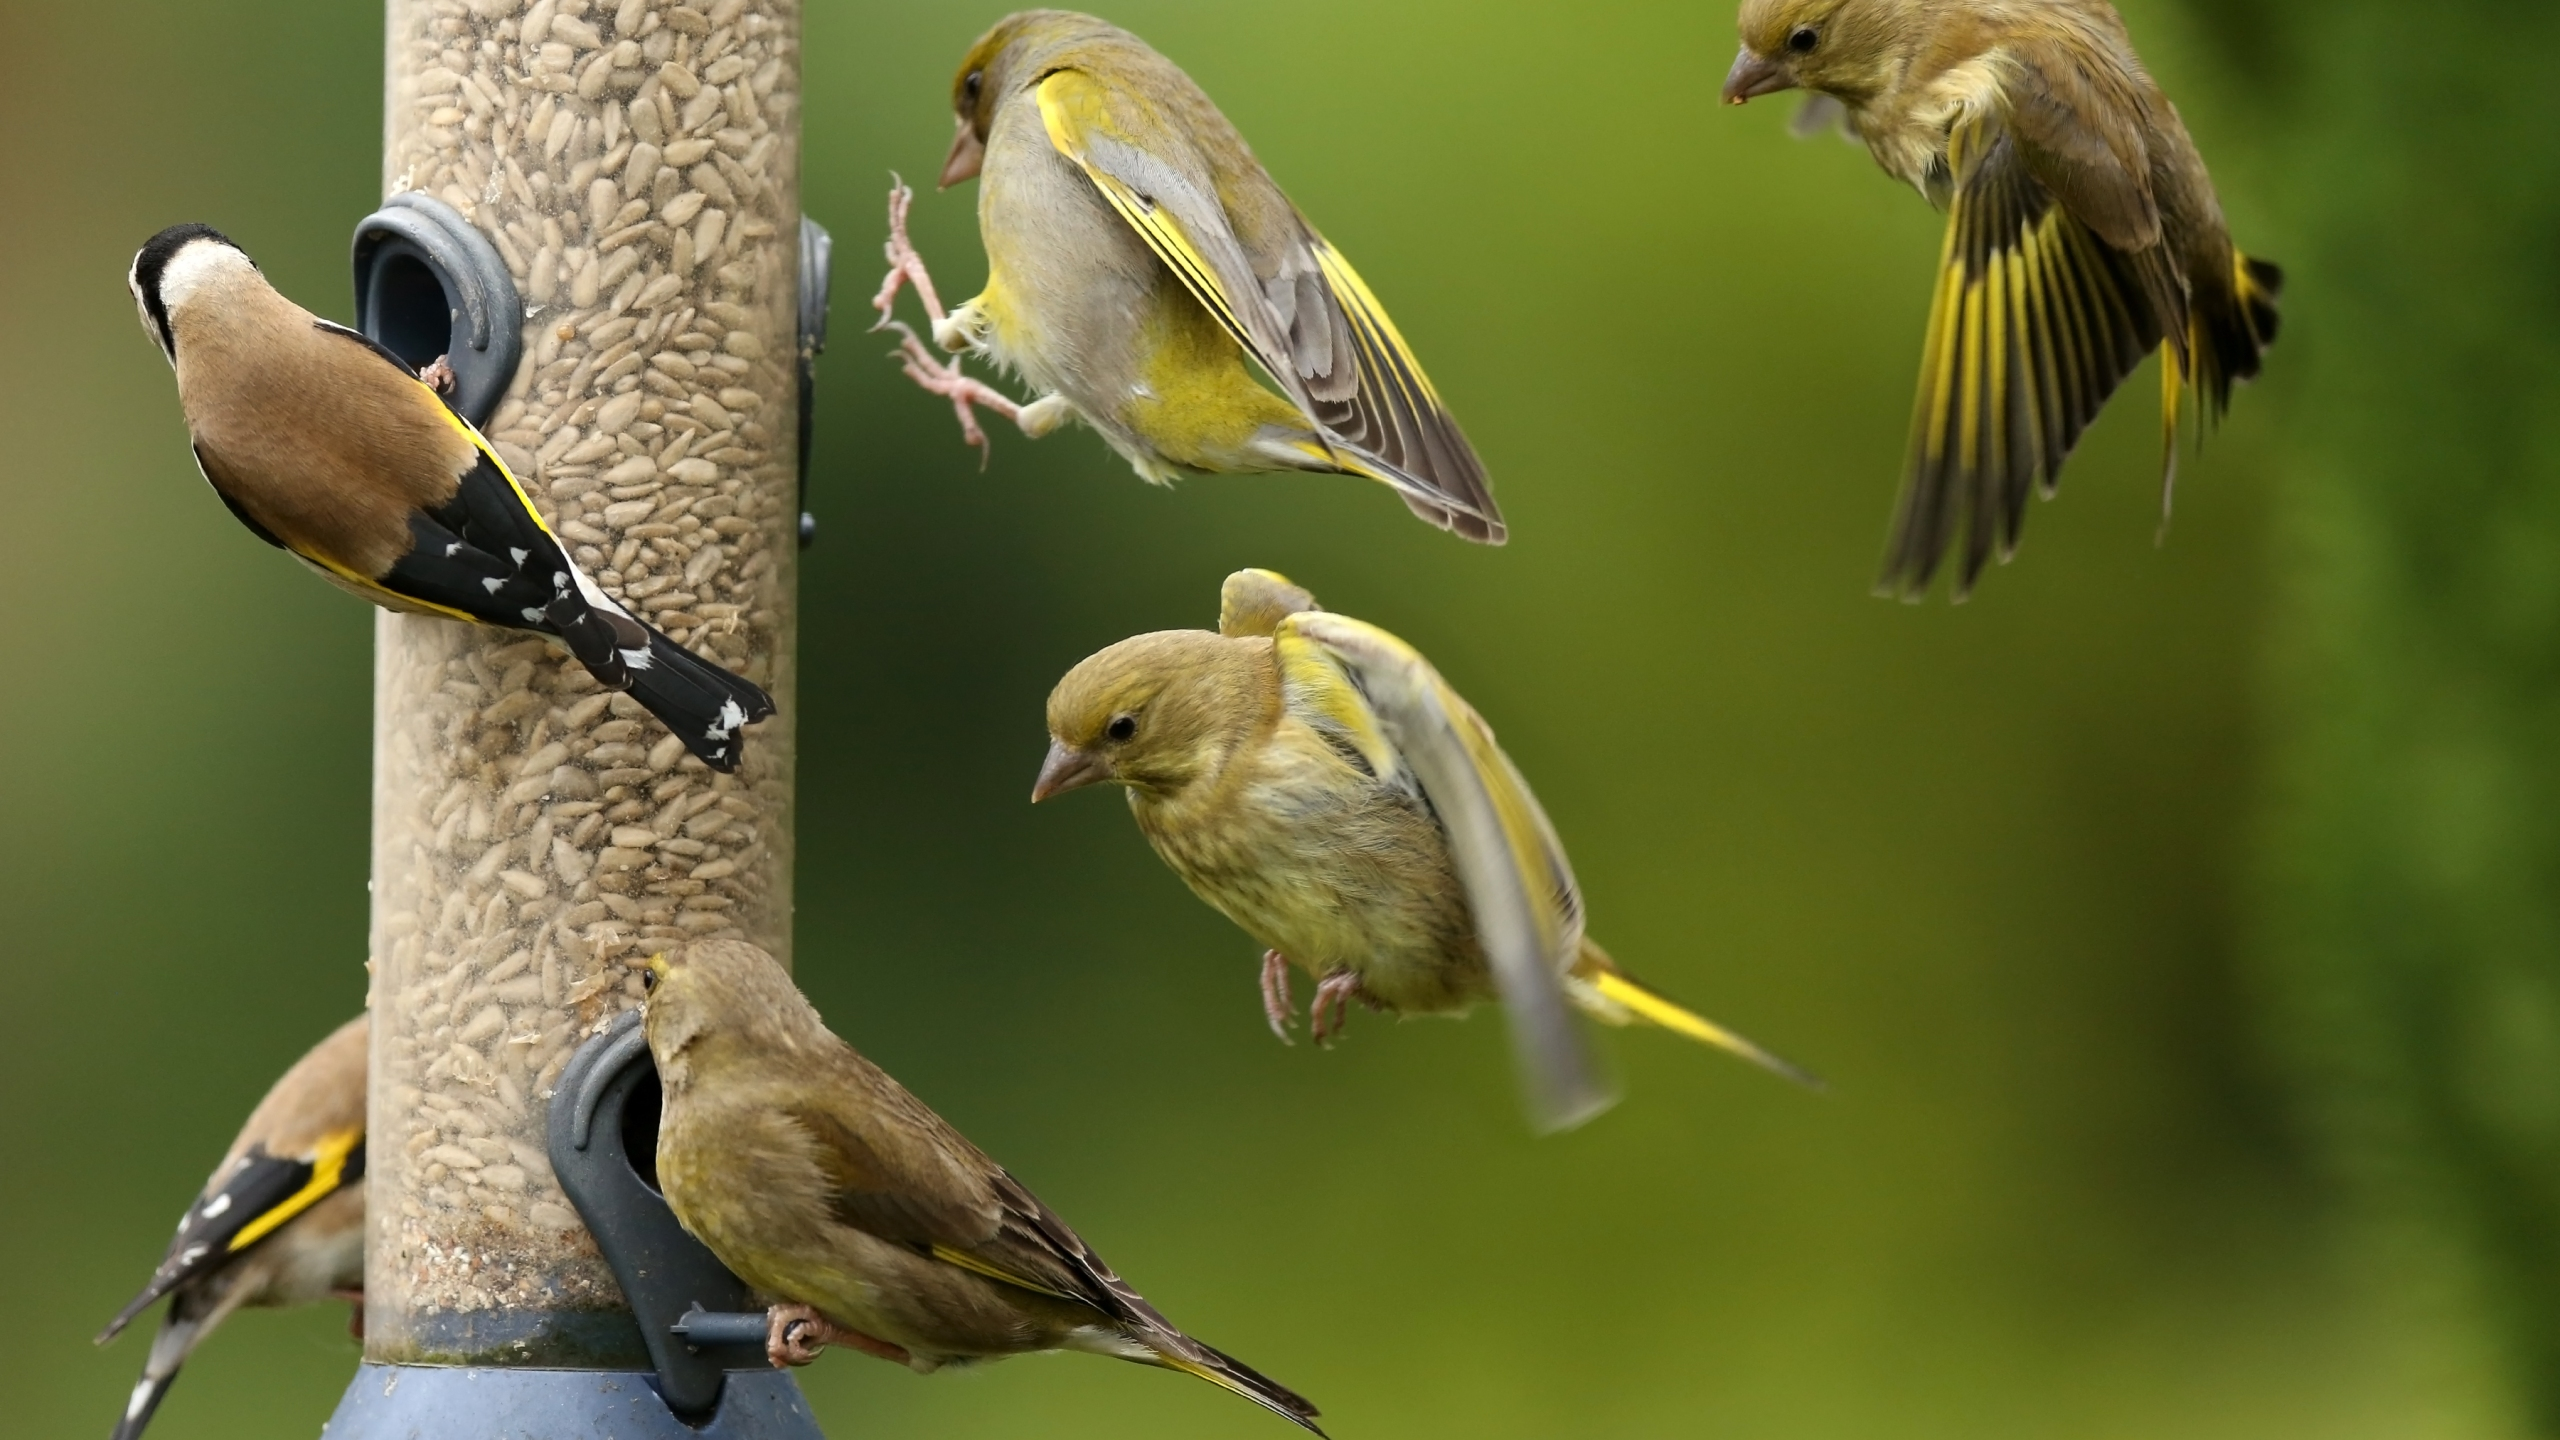 Greenfinches and goldfinches are seen on and around a bird feeder in this file photo. (Getty Images)